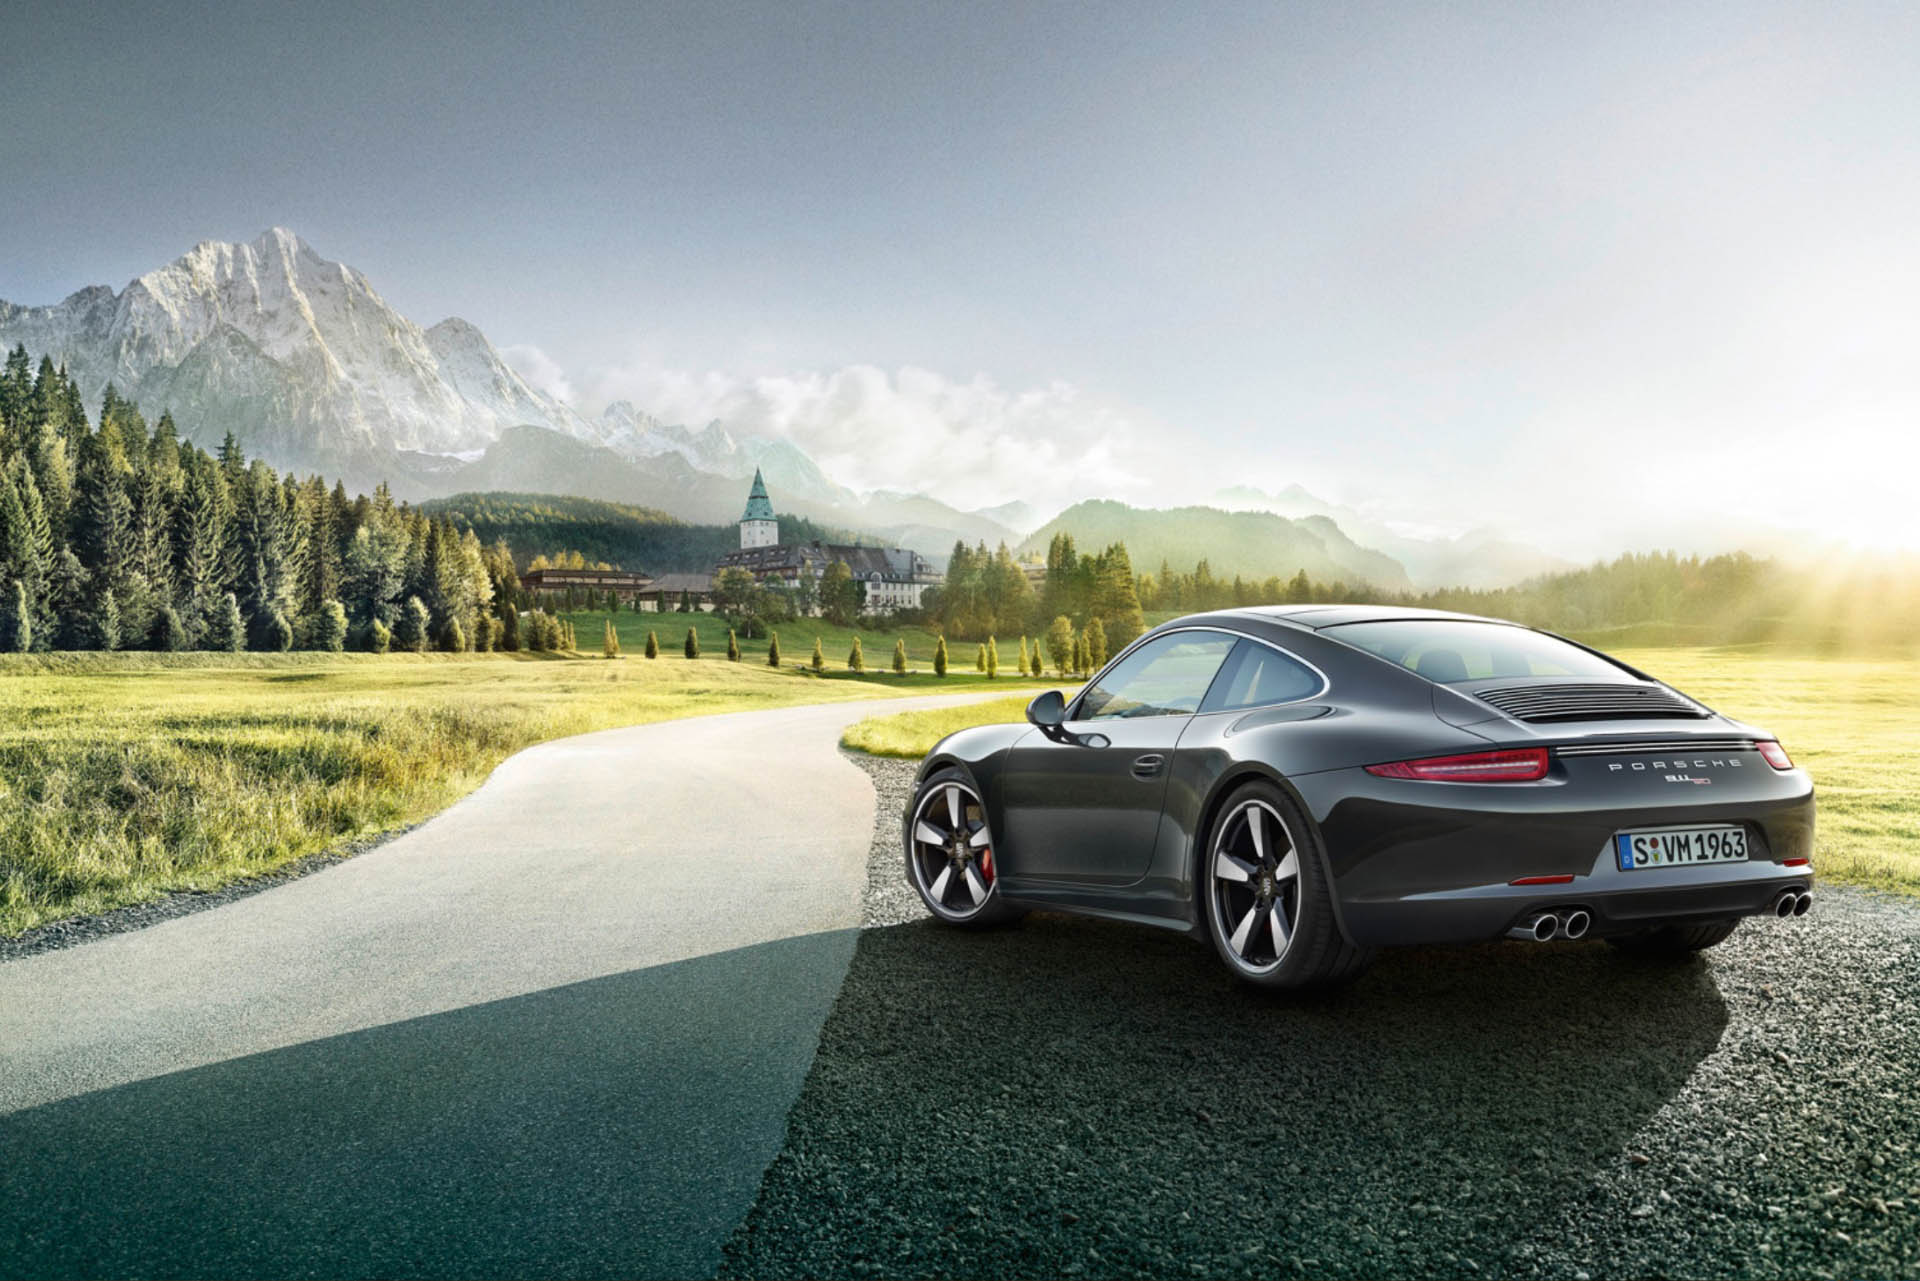 Porsche 911 50 Catalogue / Shot by Willie von Recklinghausen in the Alps